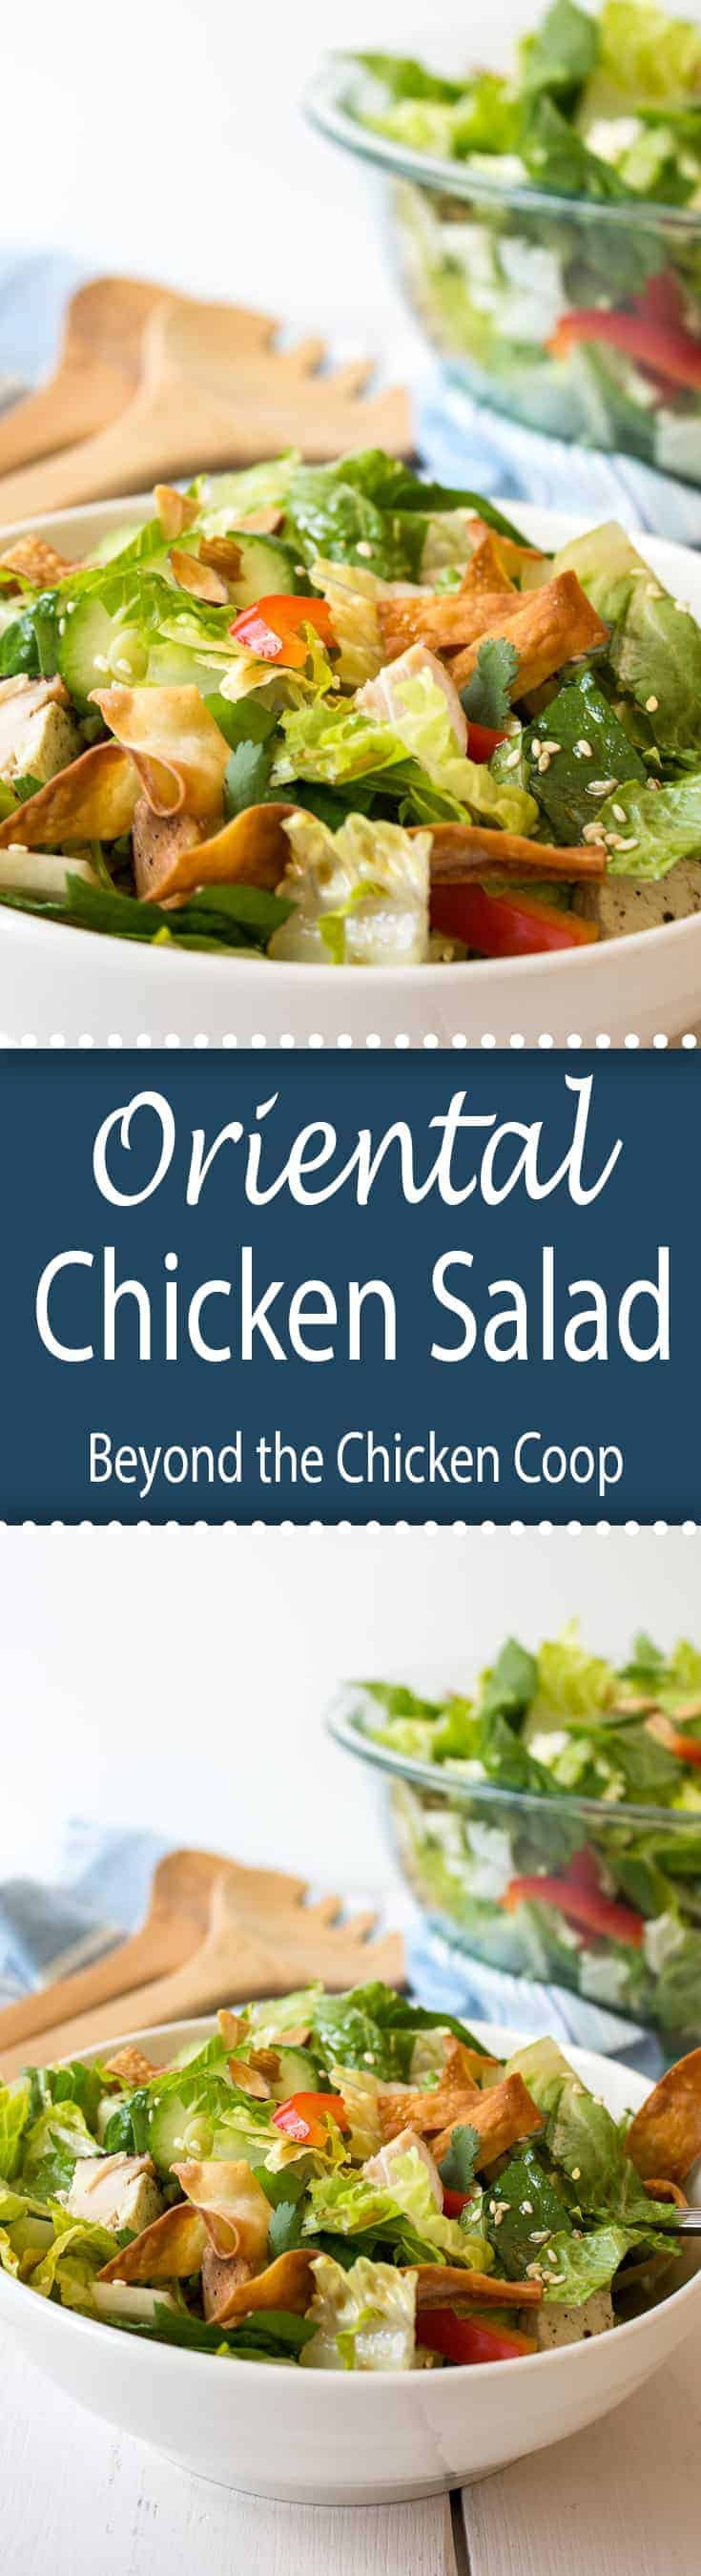 This Oriental Chicken Salad is perfect for lunch or as a light dinner.